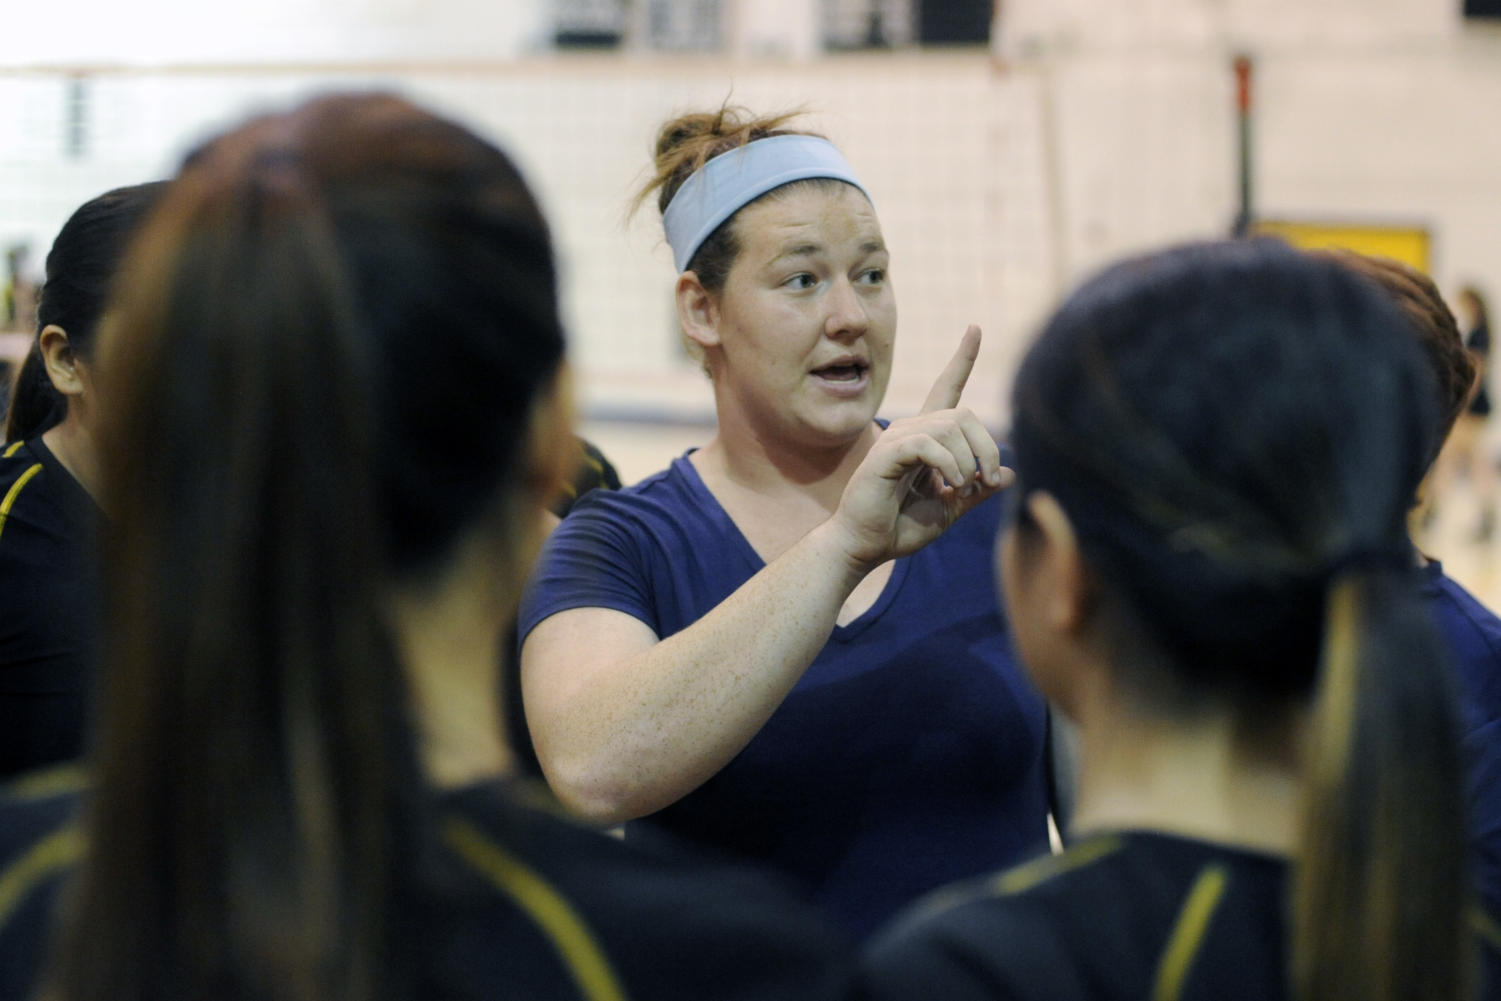 Armijo volleyball coach Paige McConlogue speaks to her team before the match against Vacaville at Armijo High School in Fairfield, Thursday. (Aaron Rosenblatt/Daily Republic)